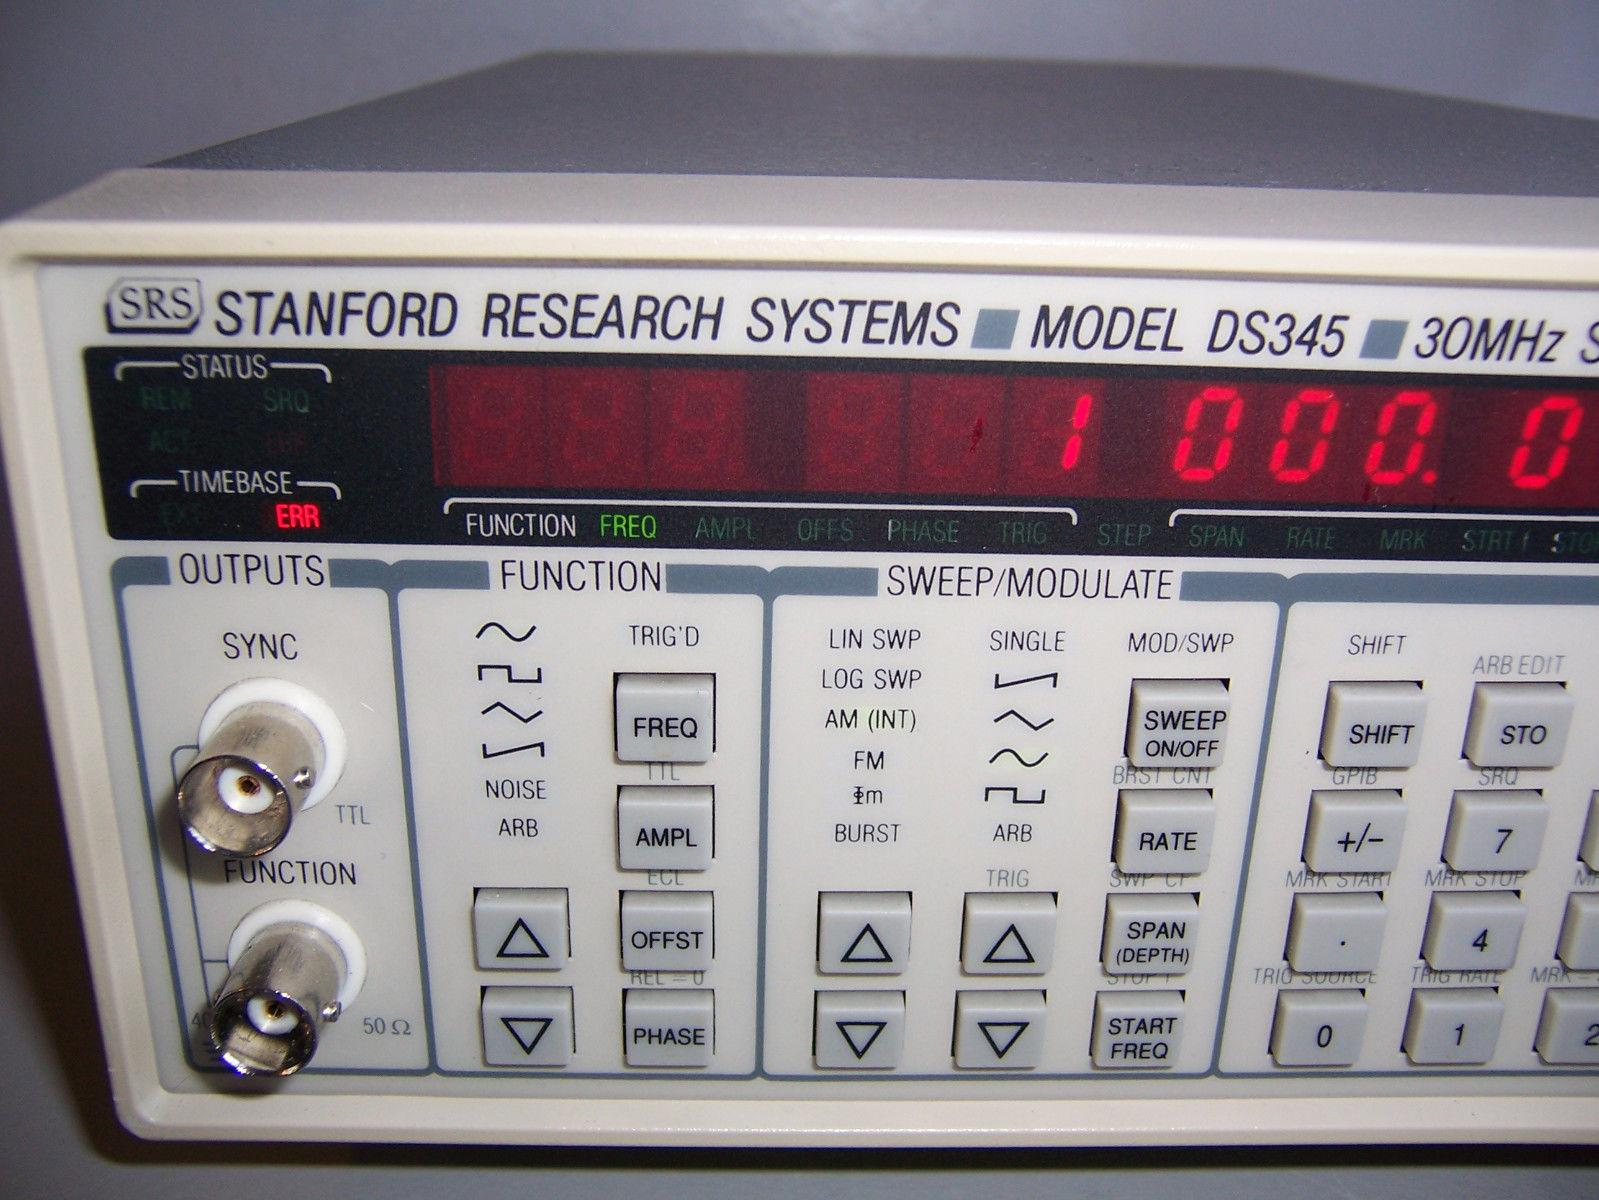 9836 STANDFORD RESEARCH SRS DS345 30MHZ SYNTHESIZED FUNCTION GENERATOR OPT 1&2